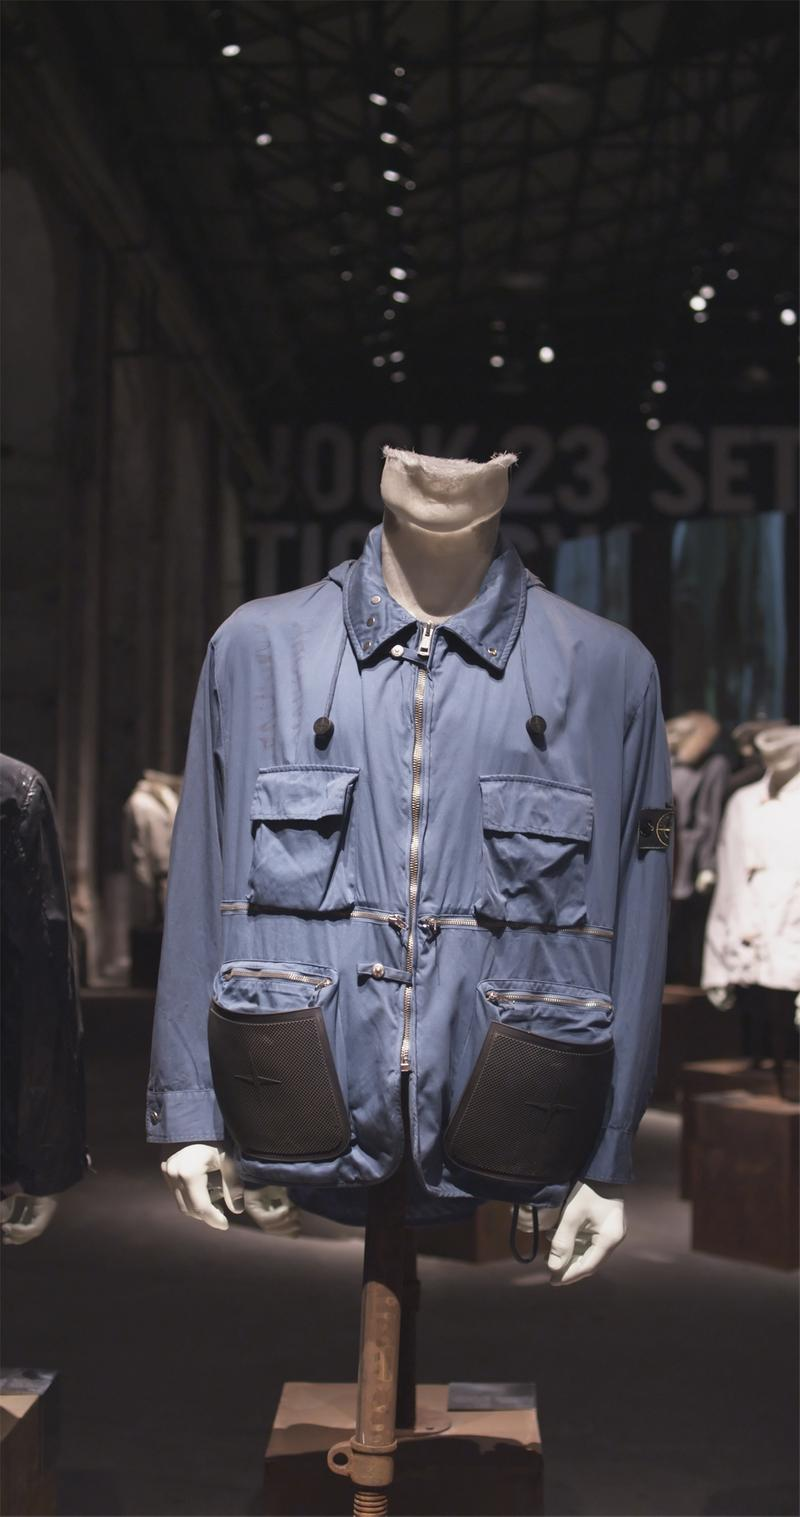 Blue zippered jacket with drawstring collar, zippered pockets, patch pockets, and Stone Island badge on upper left sleeve displayed on mannequin bust